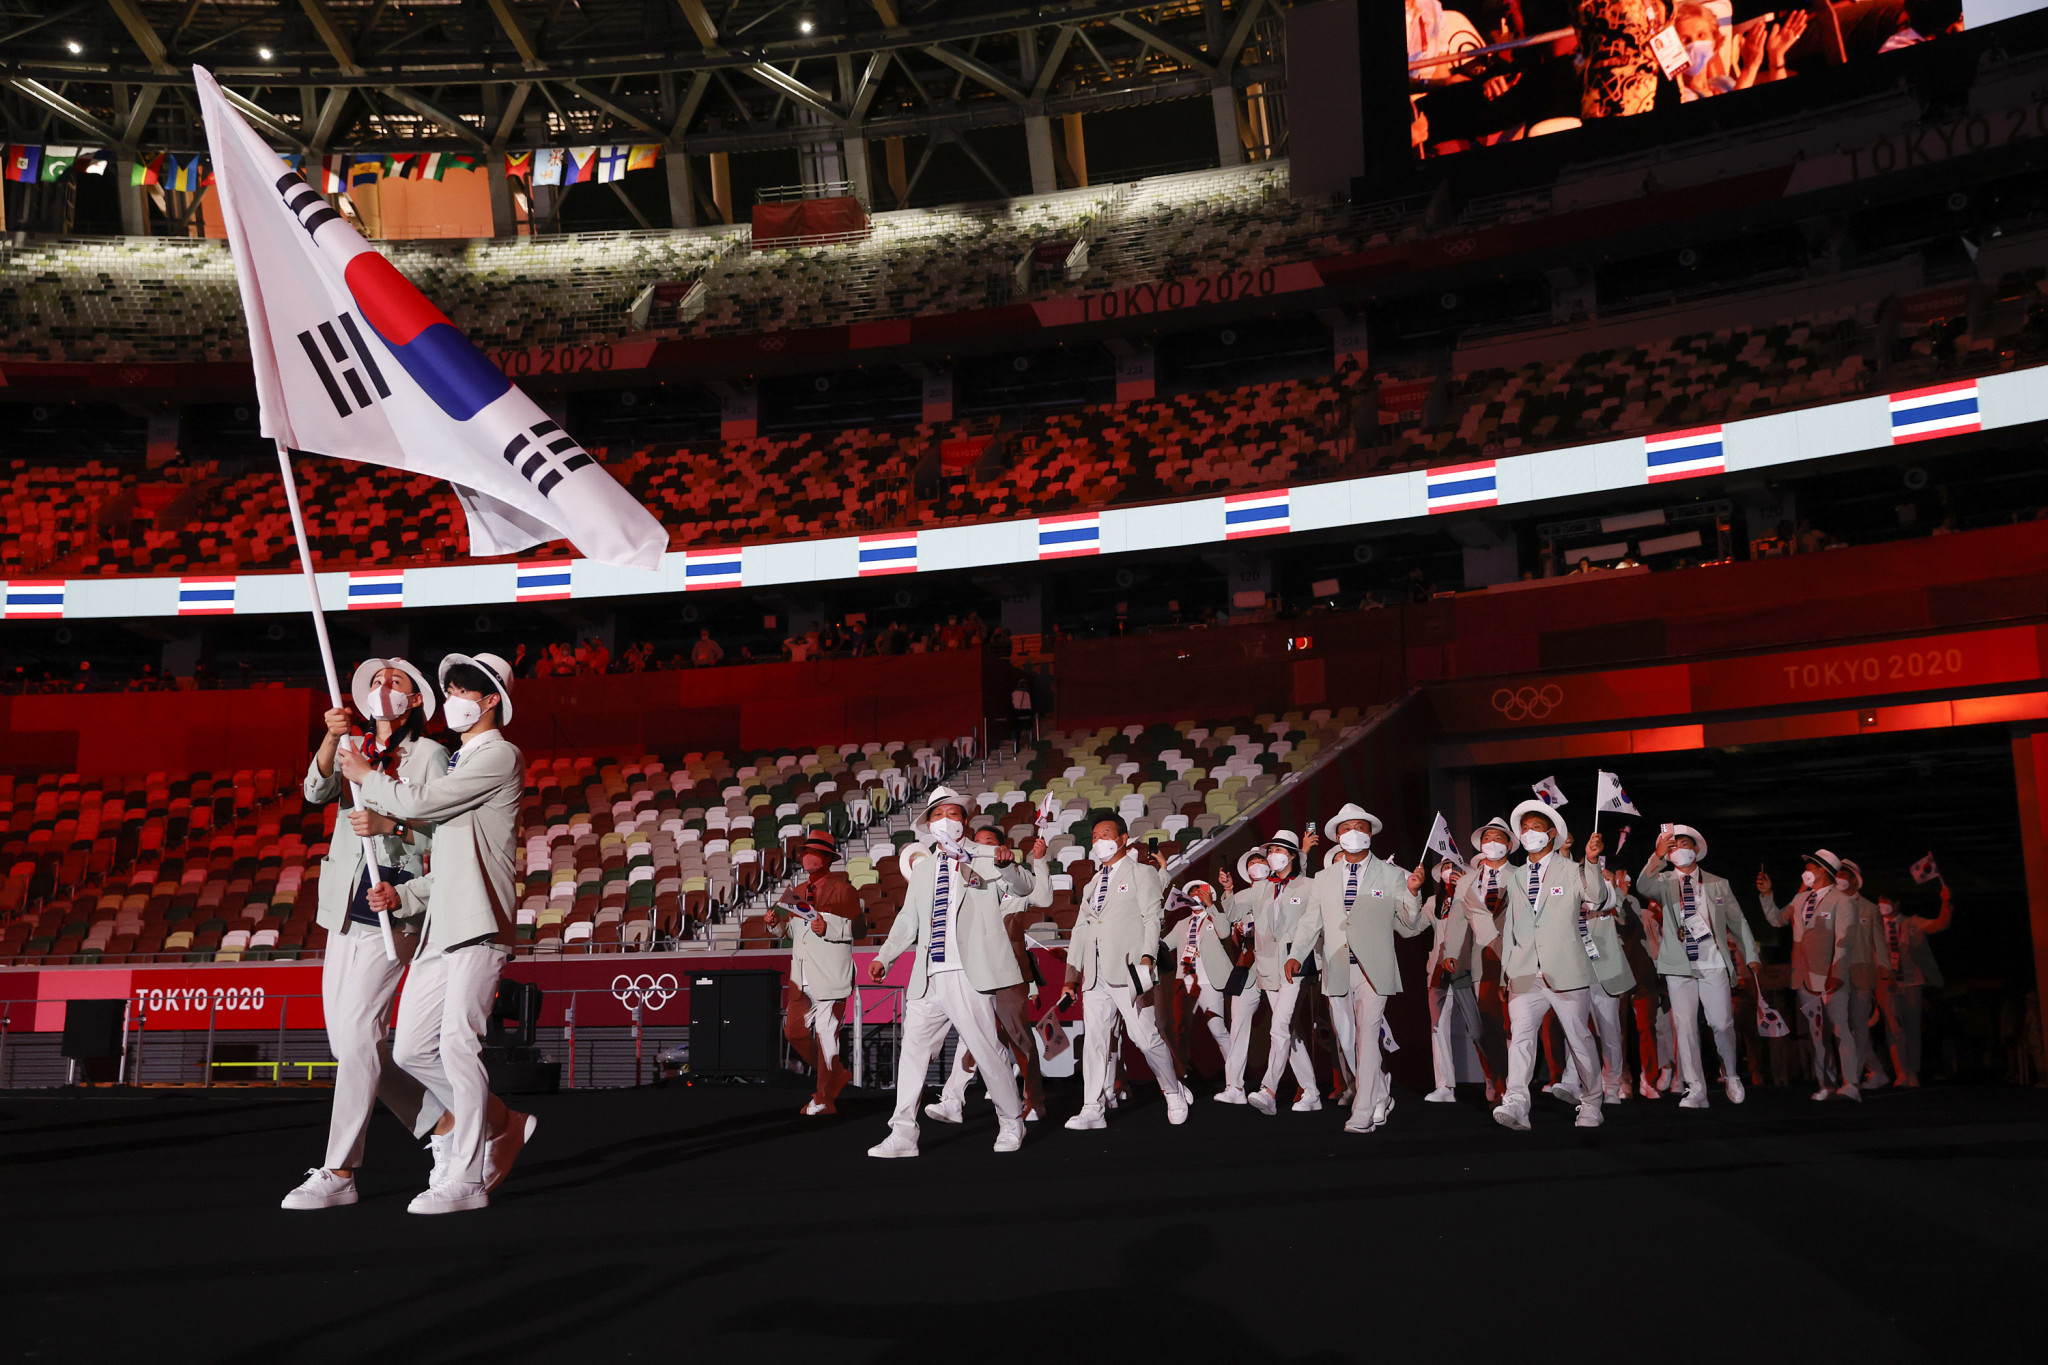 Hwang Sun-woo carried the South Korean flag at the Tokyo 2020 Olympic Opening Ceremony ©Getty Images